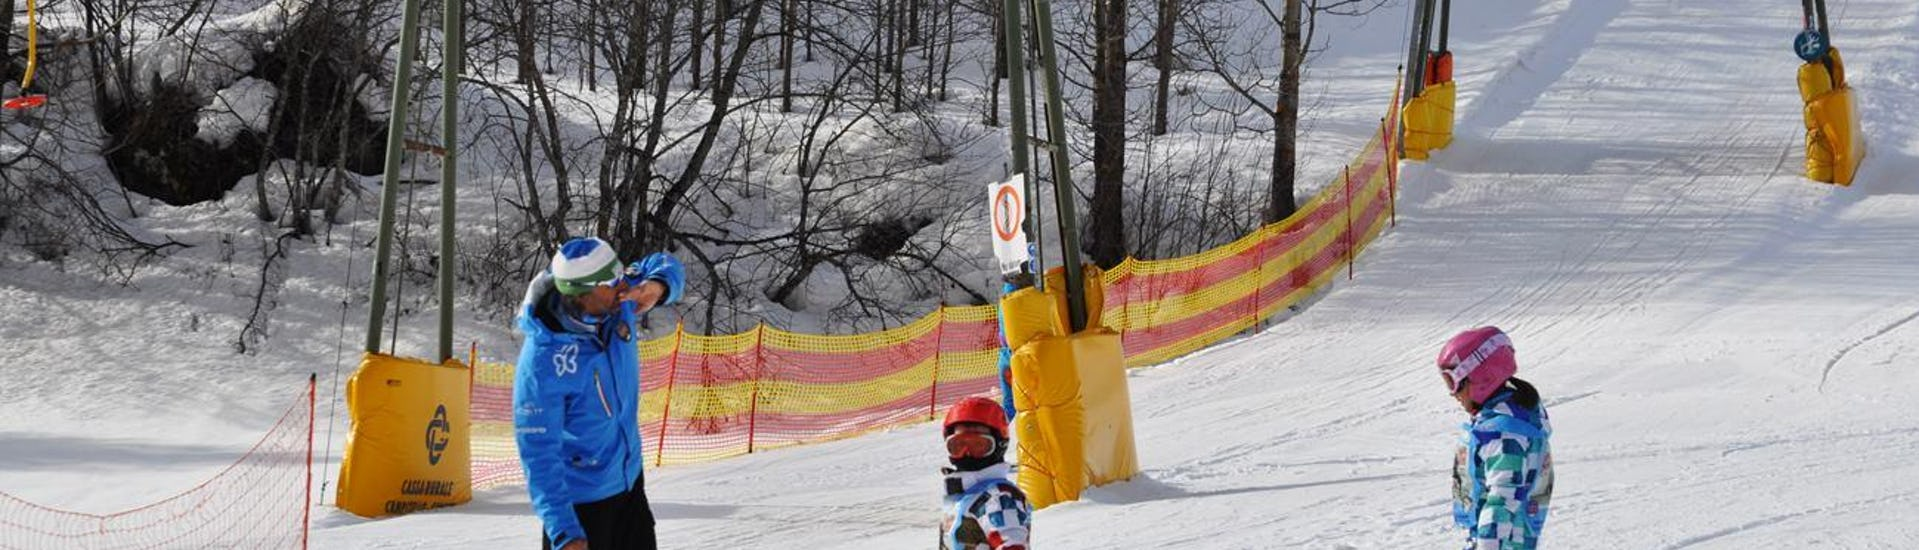 Ski Lessons for Kids (4-11 years) - First Timer